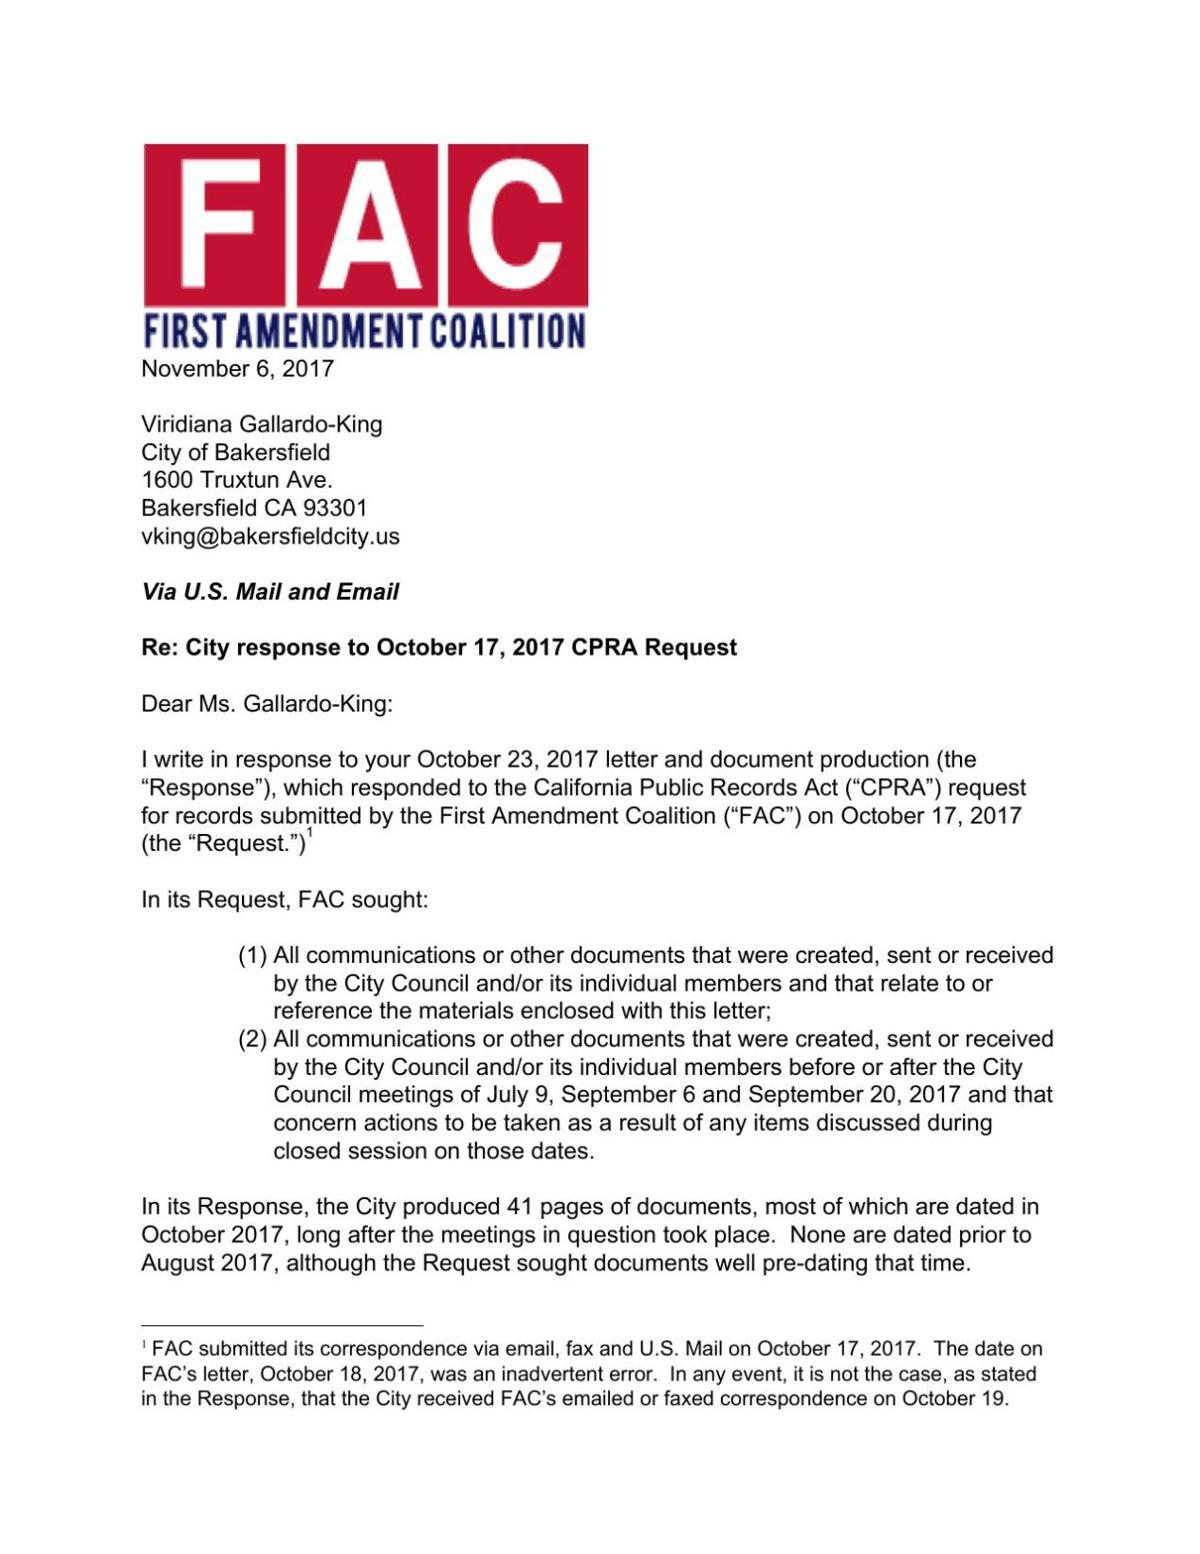 FAC follow-up letter